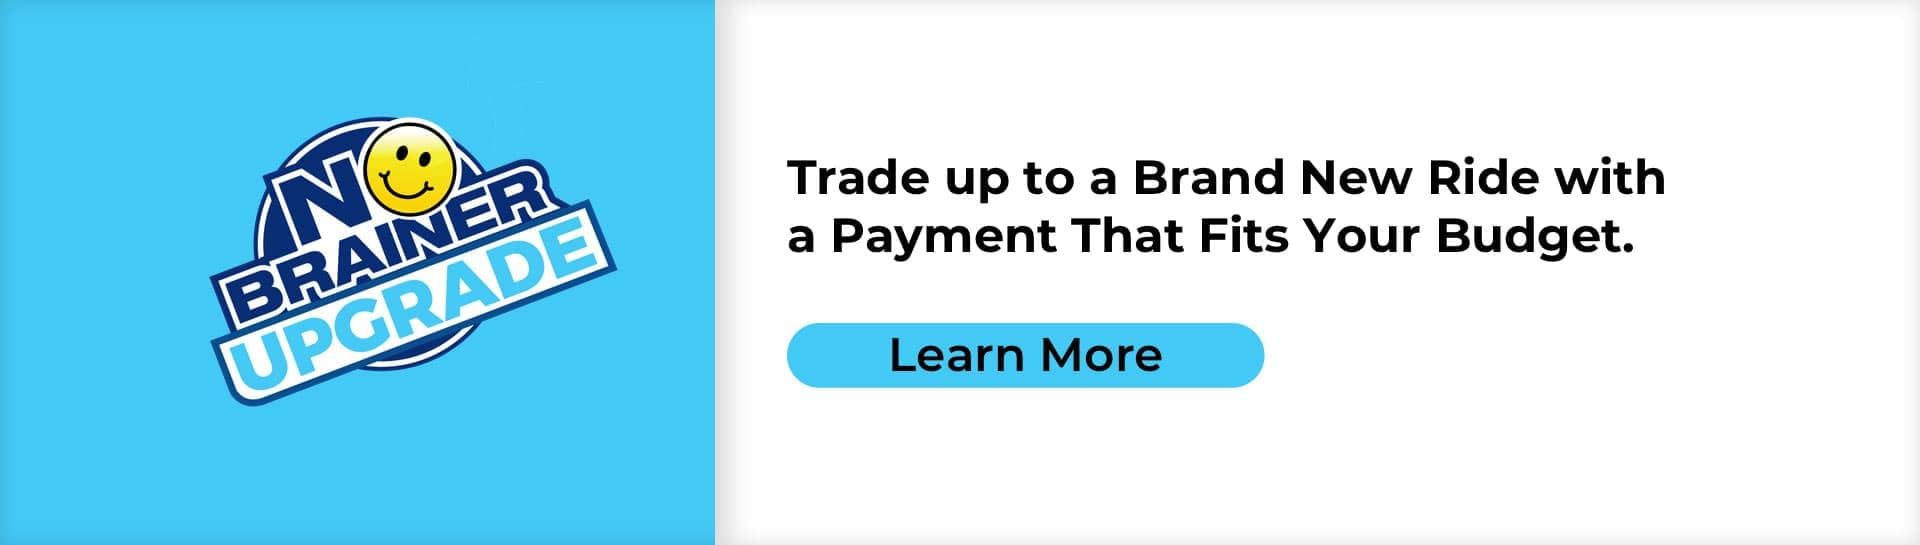 trade up to a brand new ride with a payment that fits your budget slider